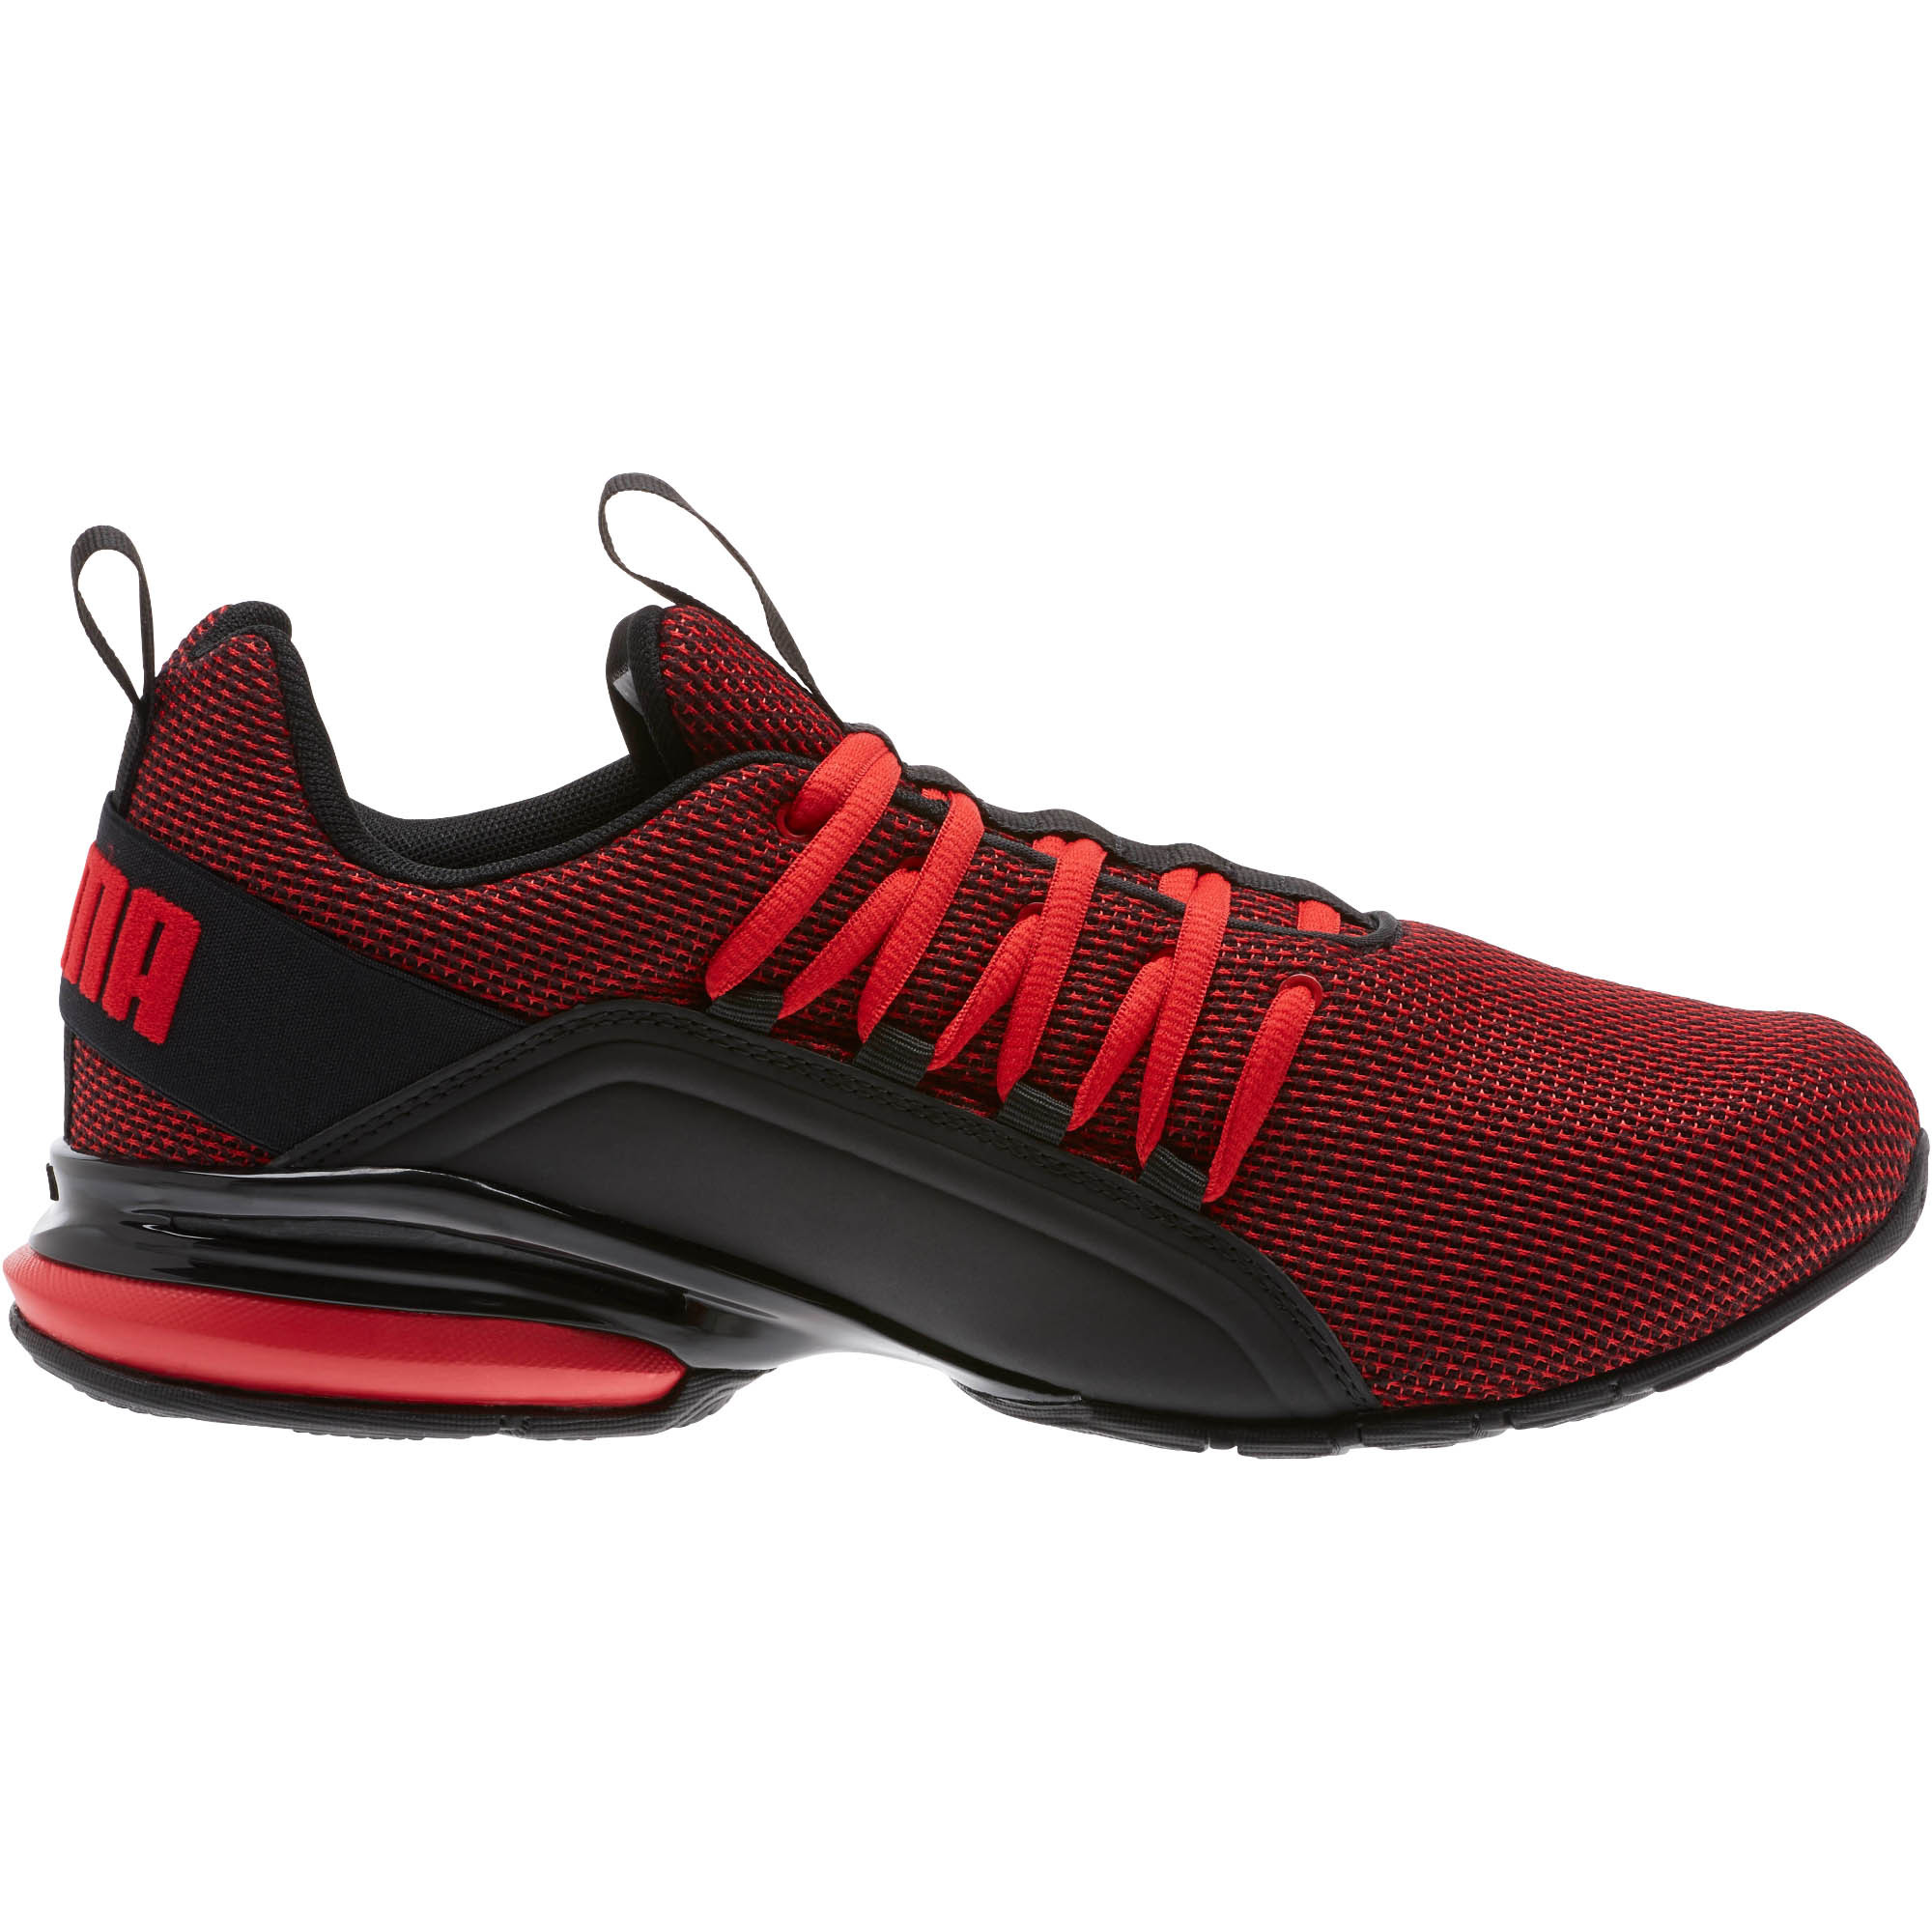 PUMA-Men-039-s-Axelion-Mesh-Wide-Training-Shoes thumbnail 5